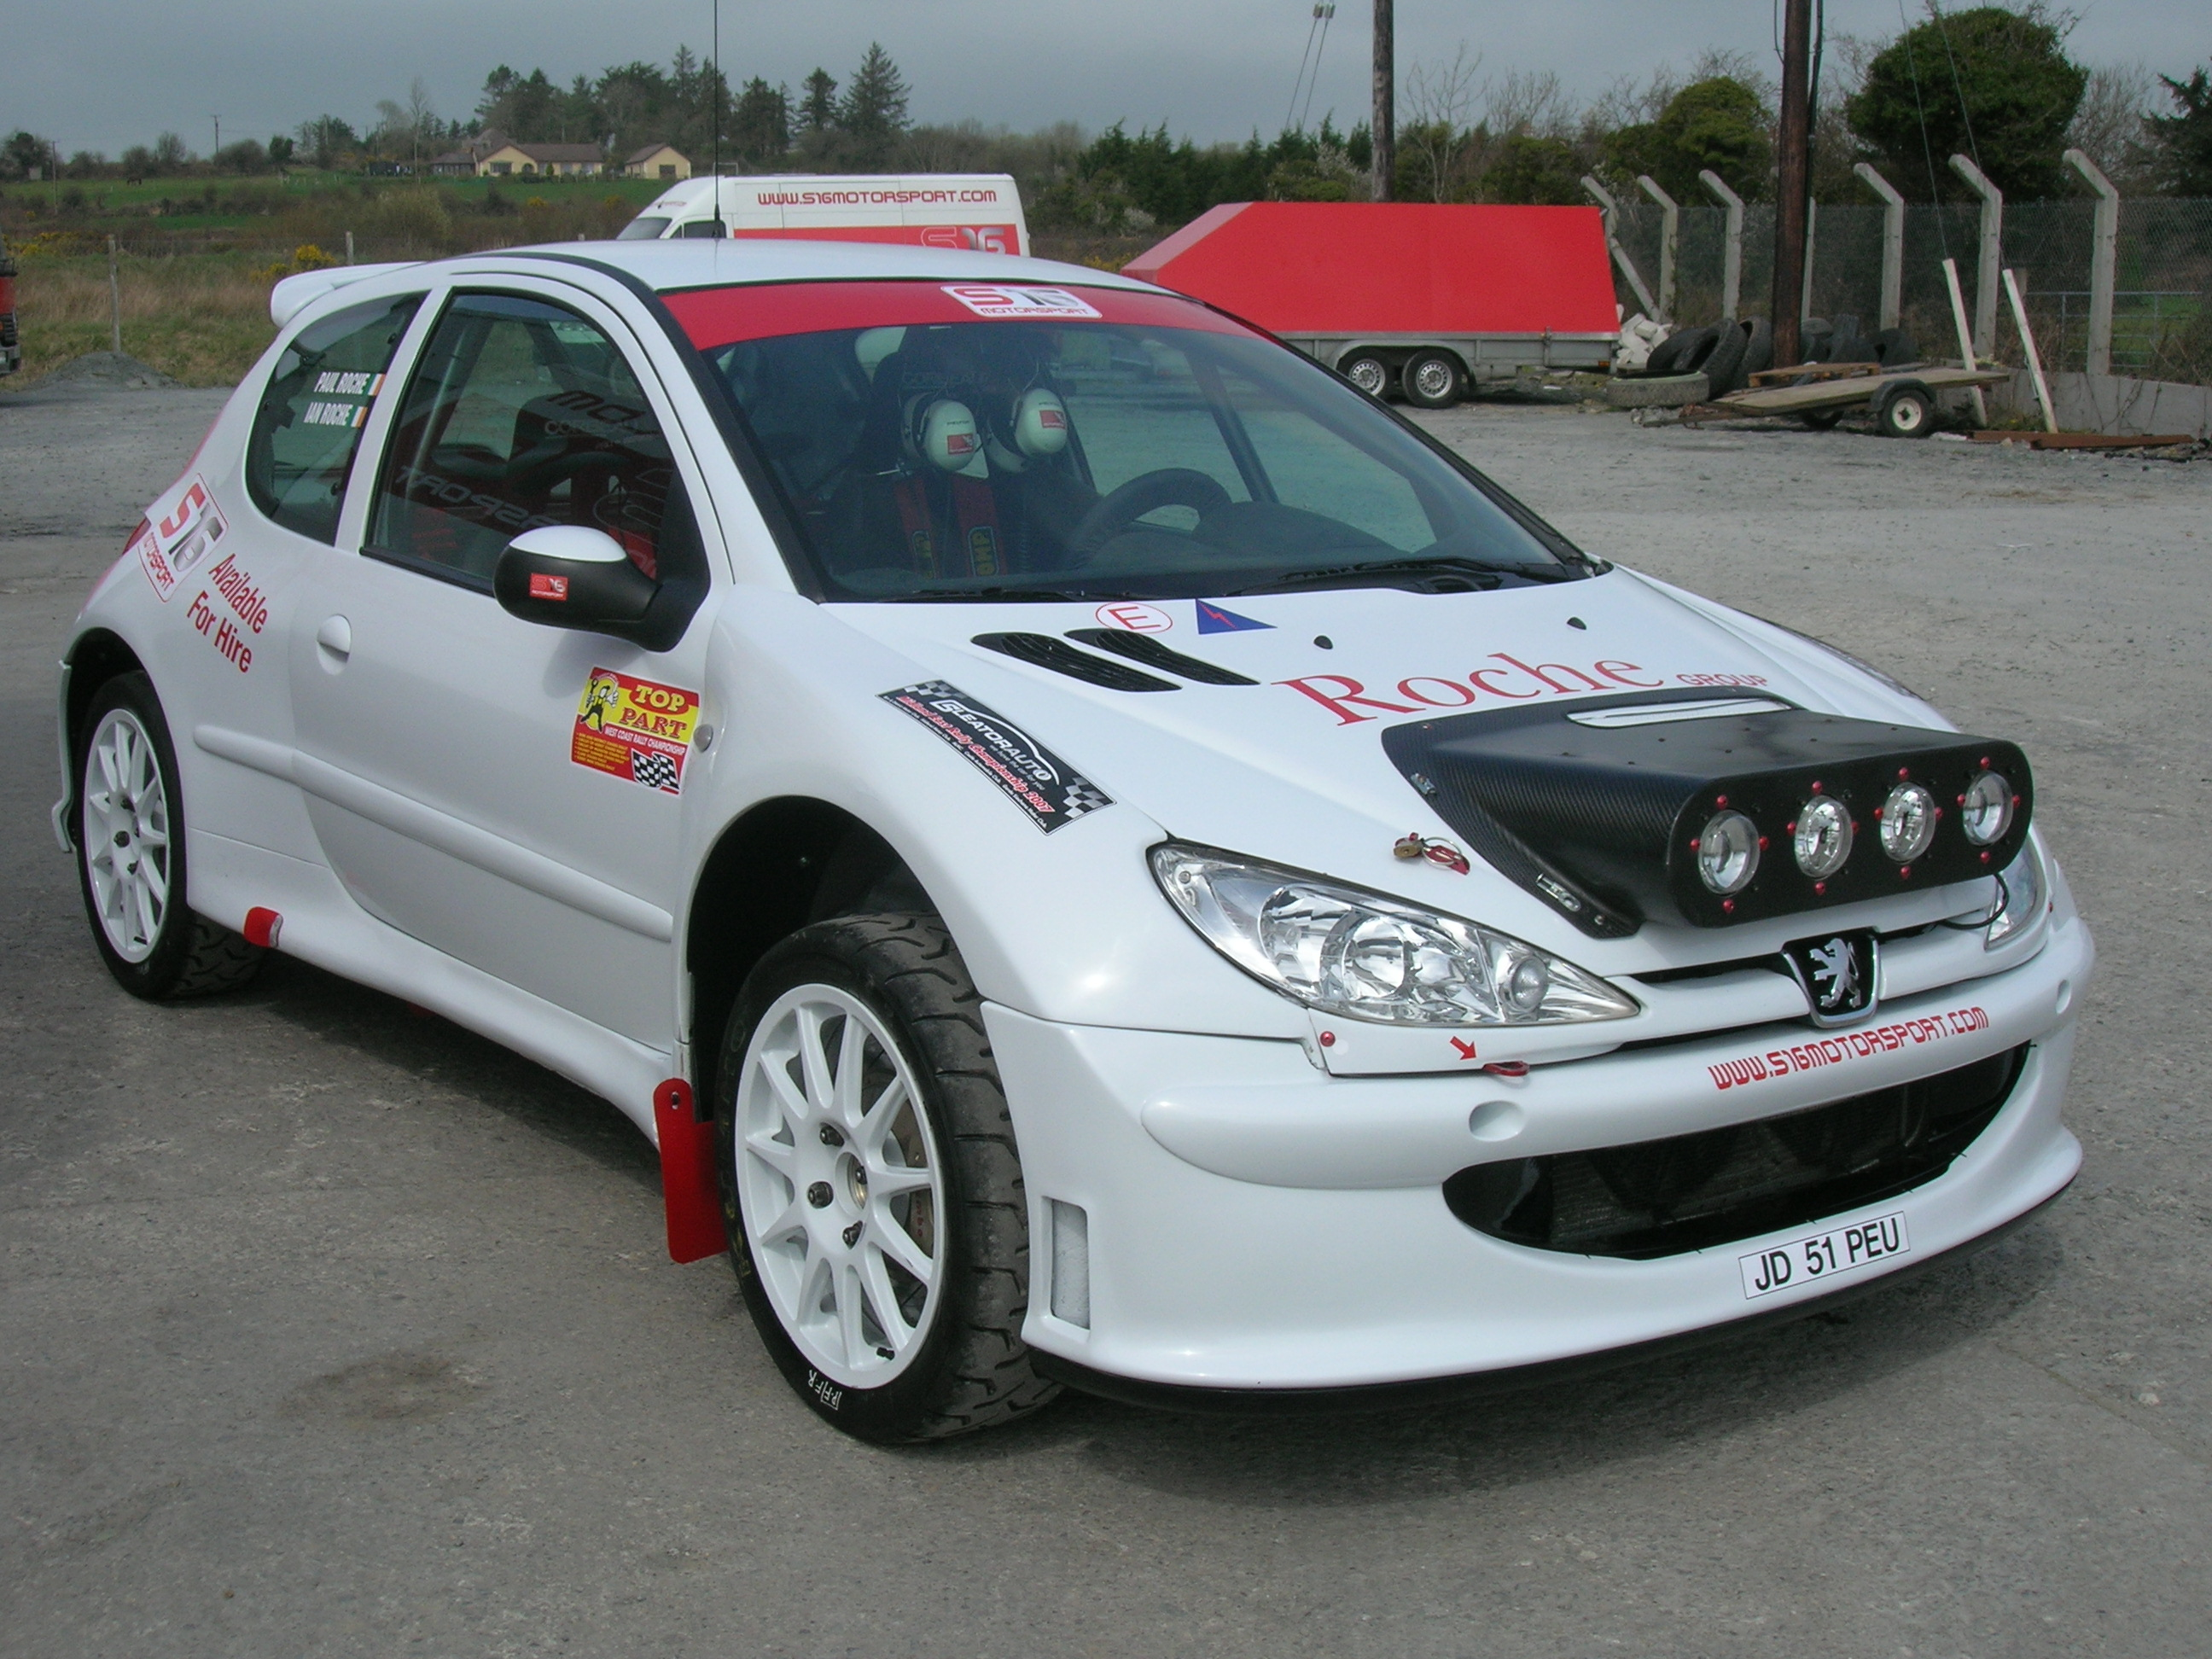 Fancy Peugeot 206 Rally Car For Sale Collection - Classic Cars Ideas ...